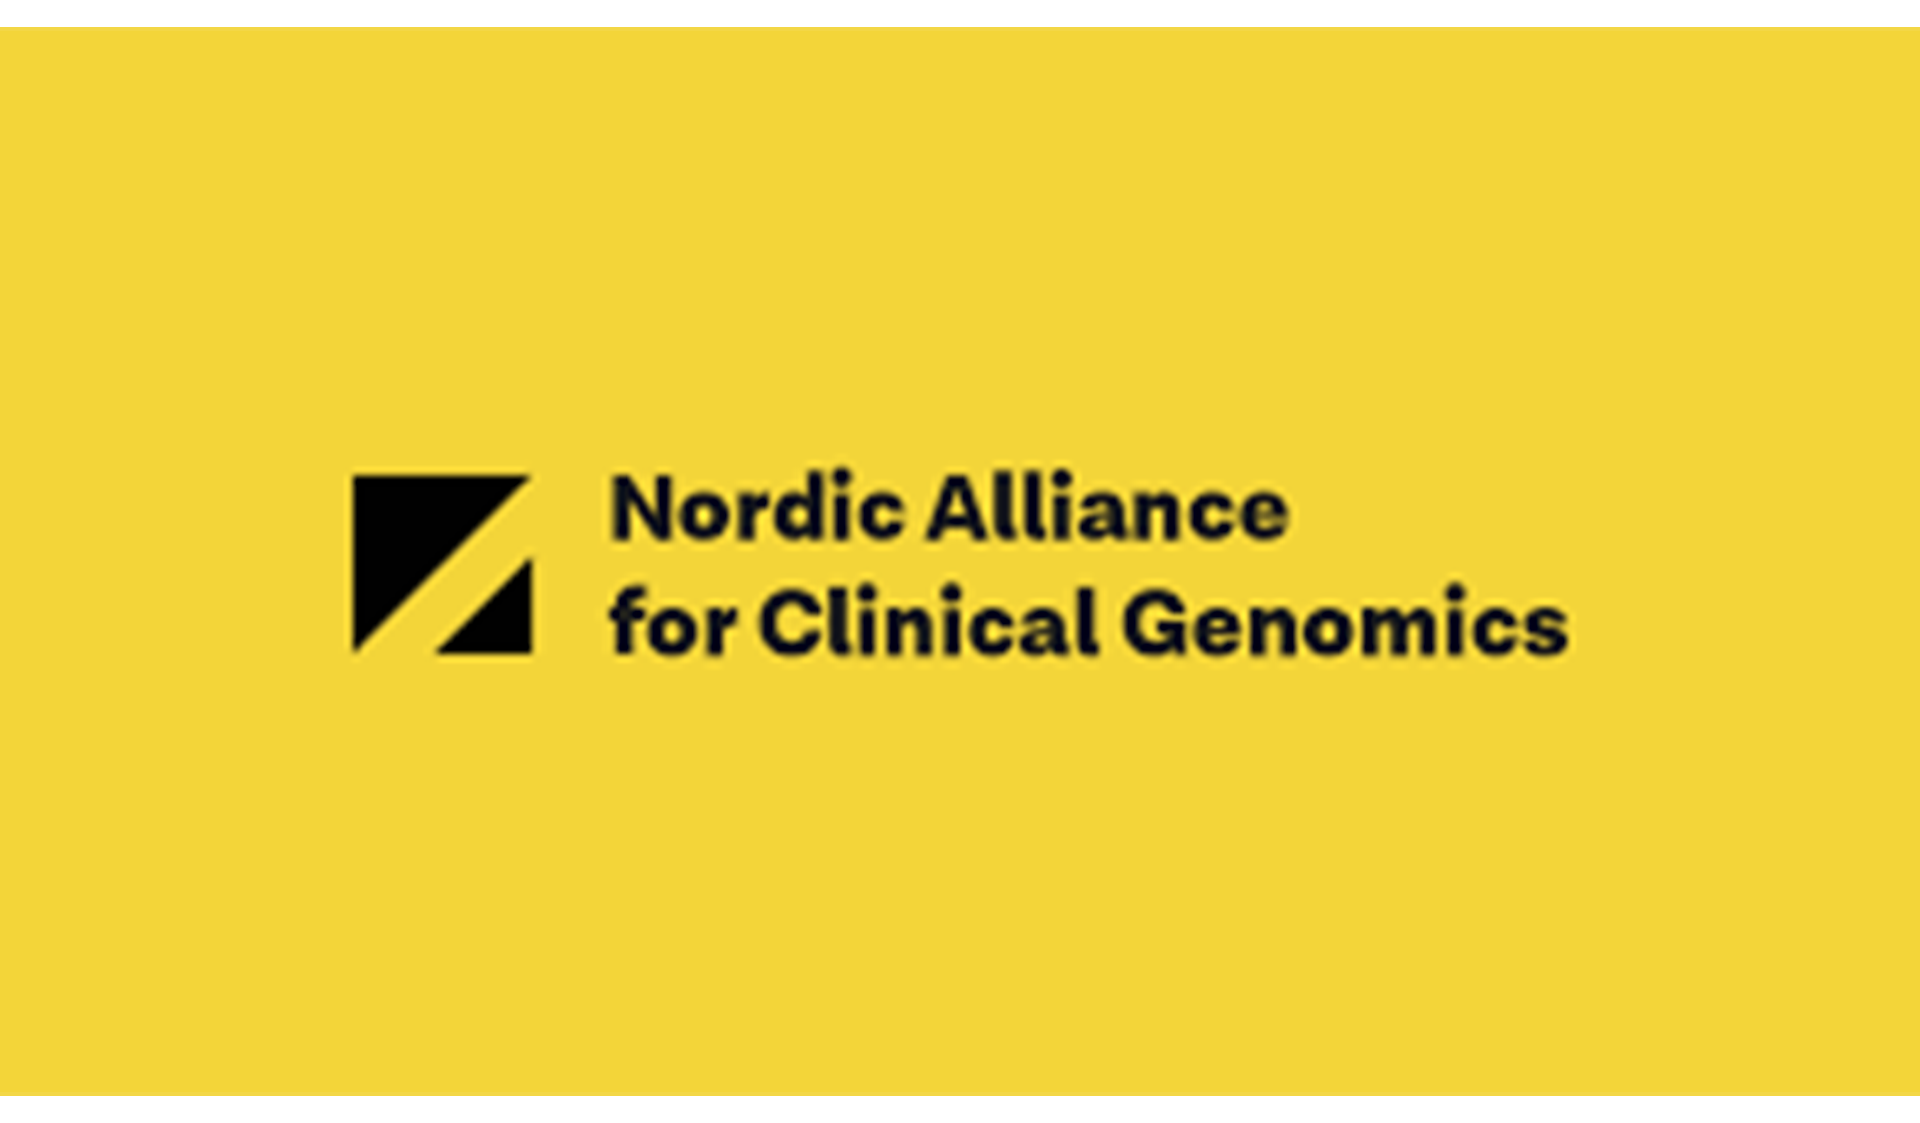 The Nordic Alliance for Clinical Genomics - NACG